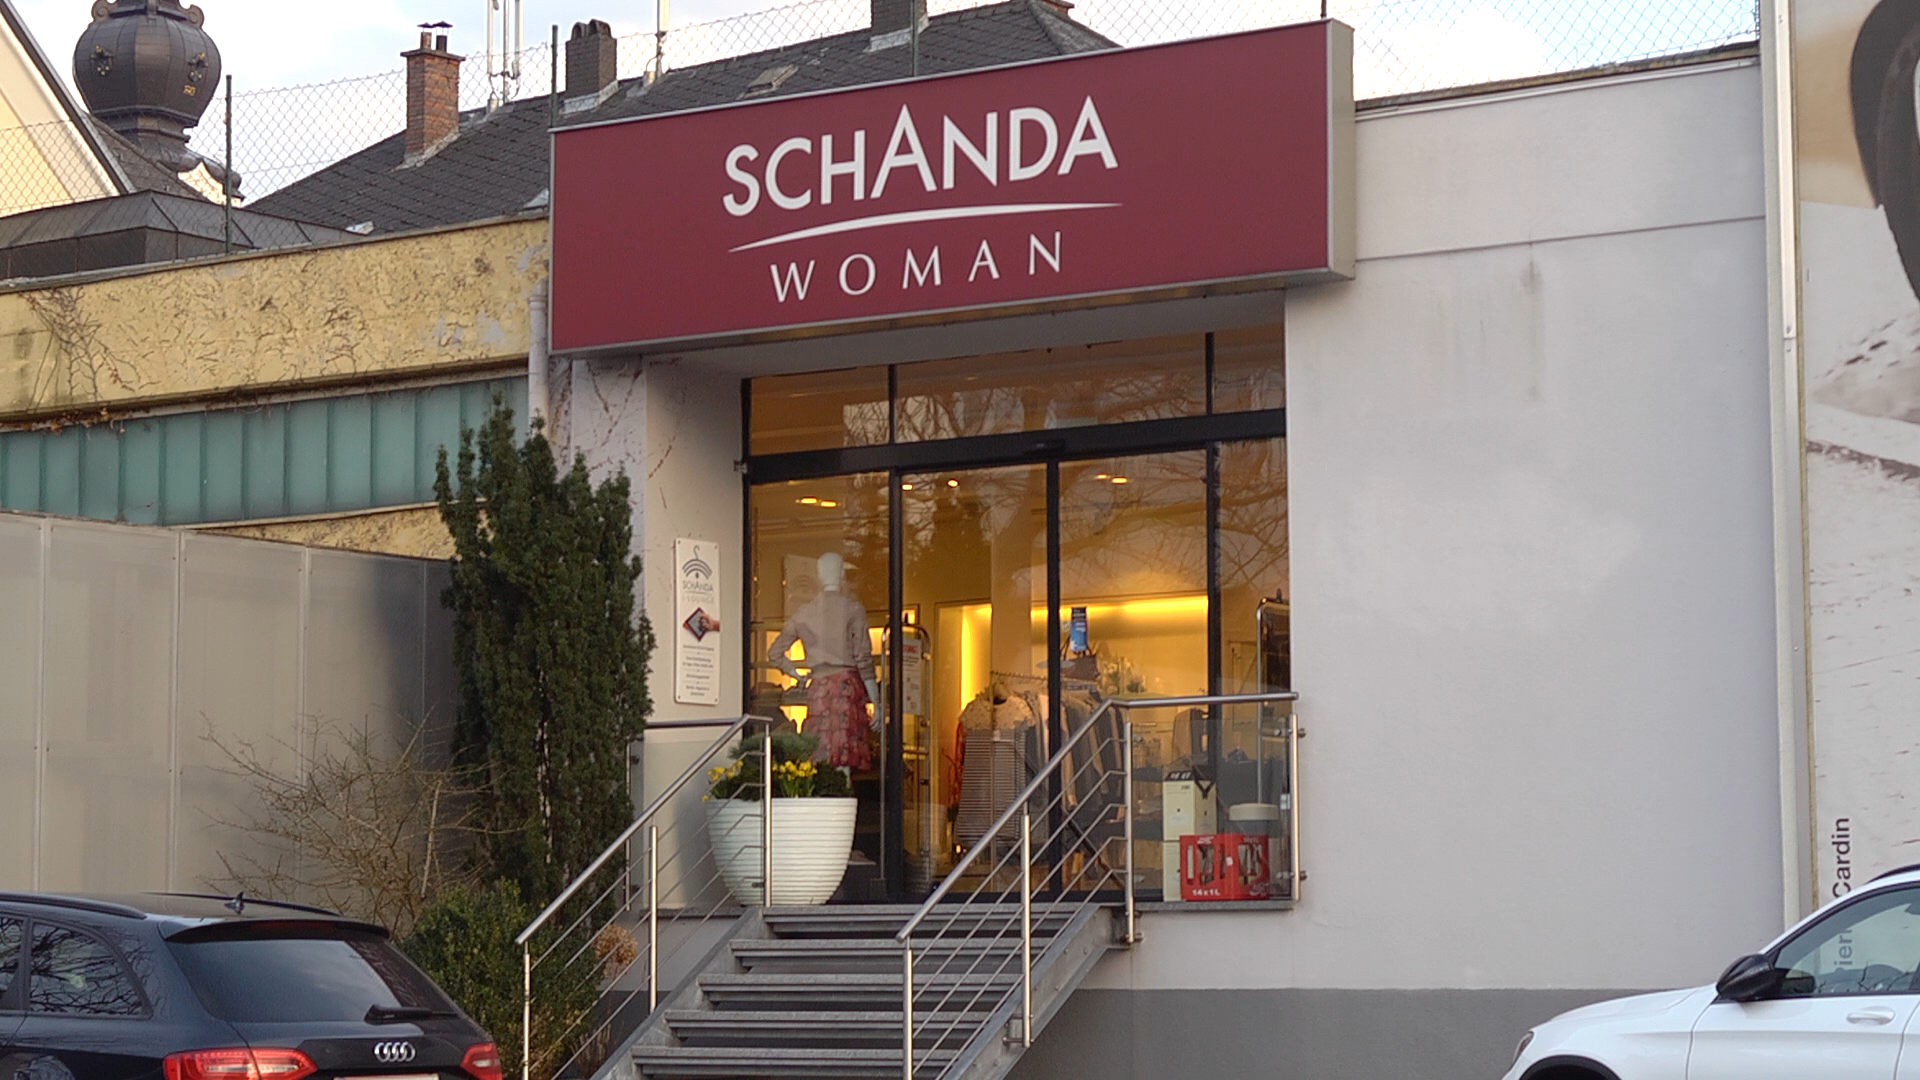 Deluxe Night bei Schanda Woman